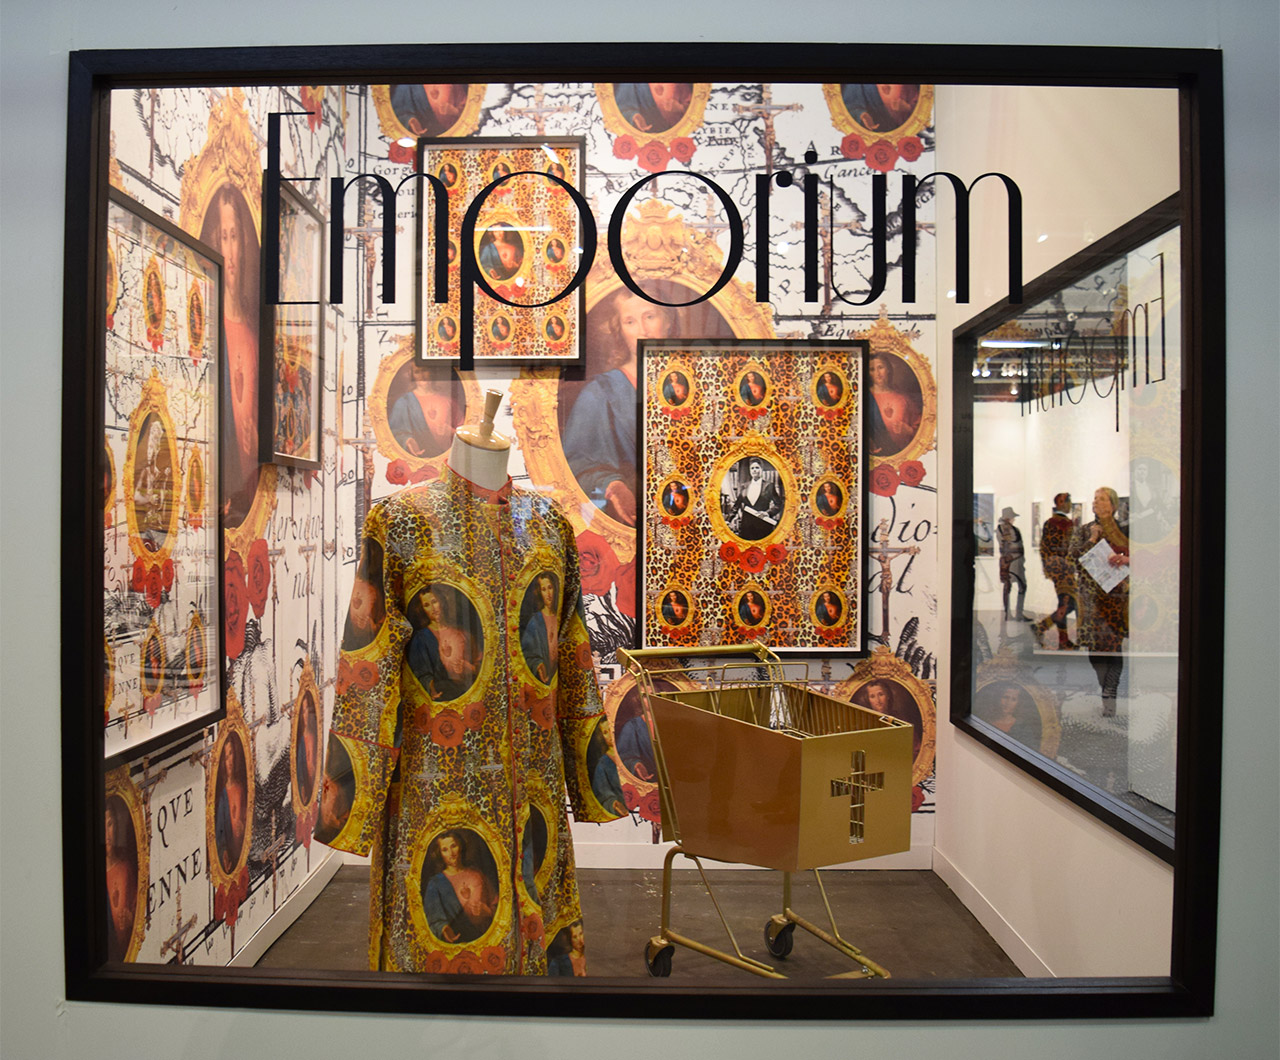 """Looking in on Kudzanai Chiurai's installation """"Emporium"""" (2016) in the Goodman Gallery booth at the 2016 Armory Show"""